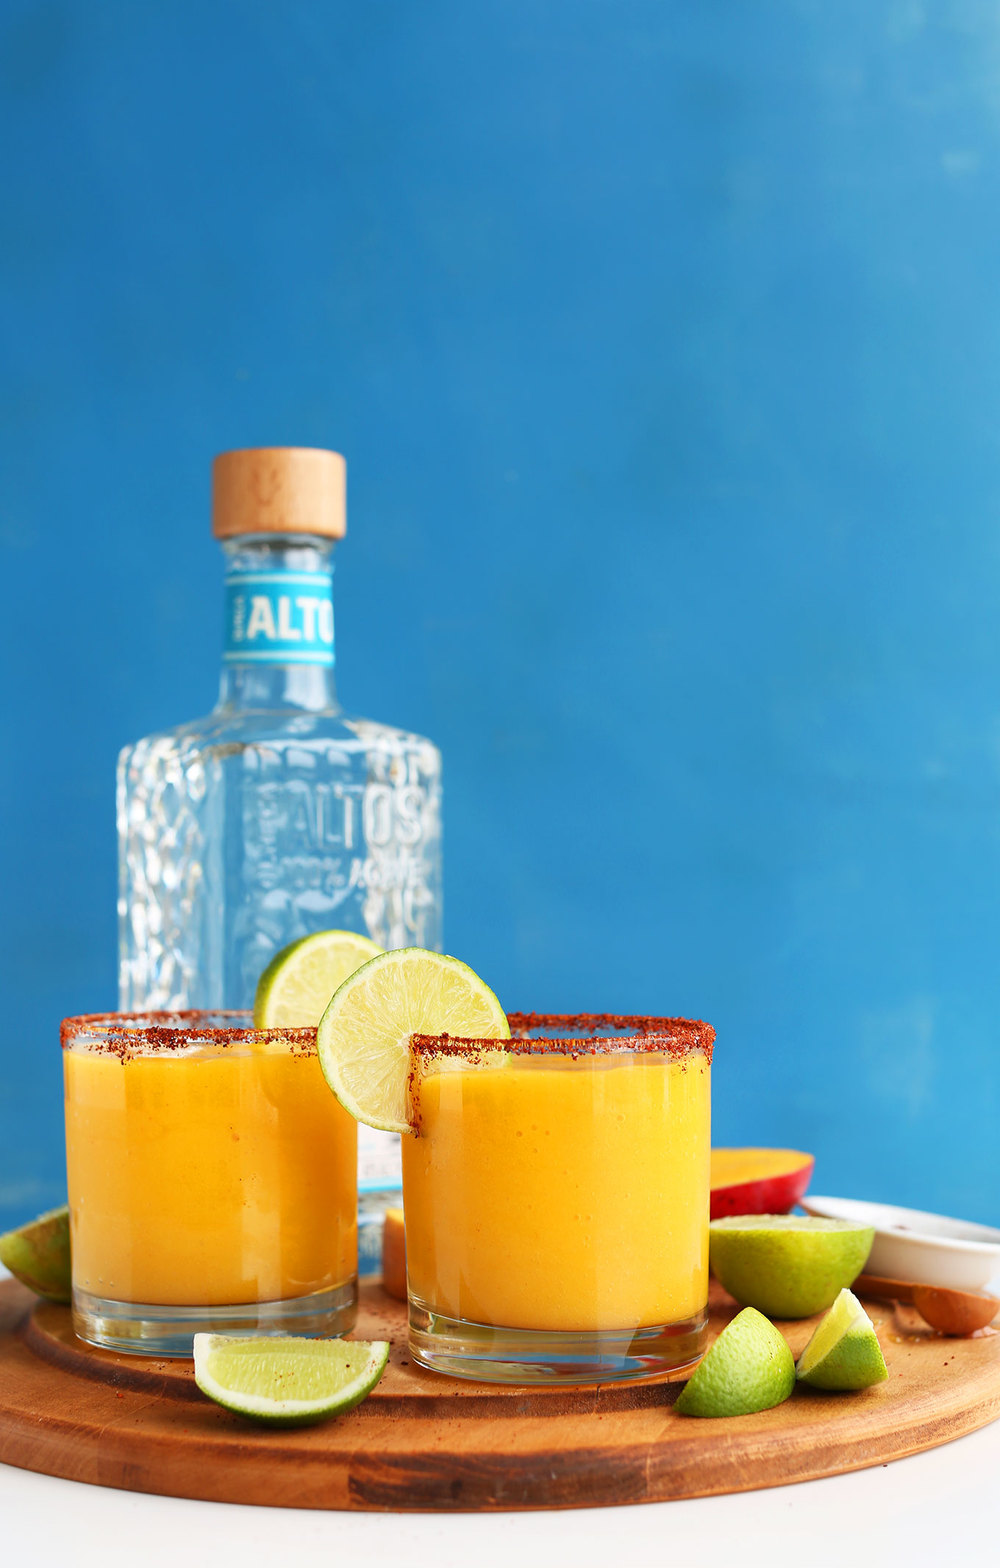 Sweet + Spicy Mango Chili Lime Margs // via Minimalist Baker